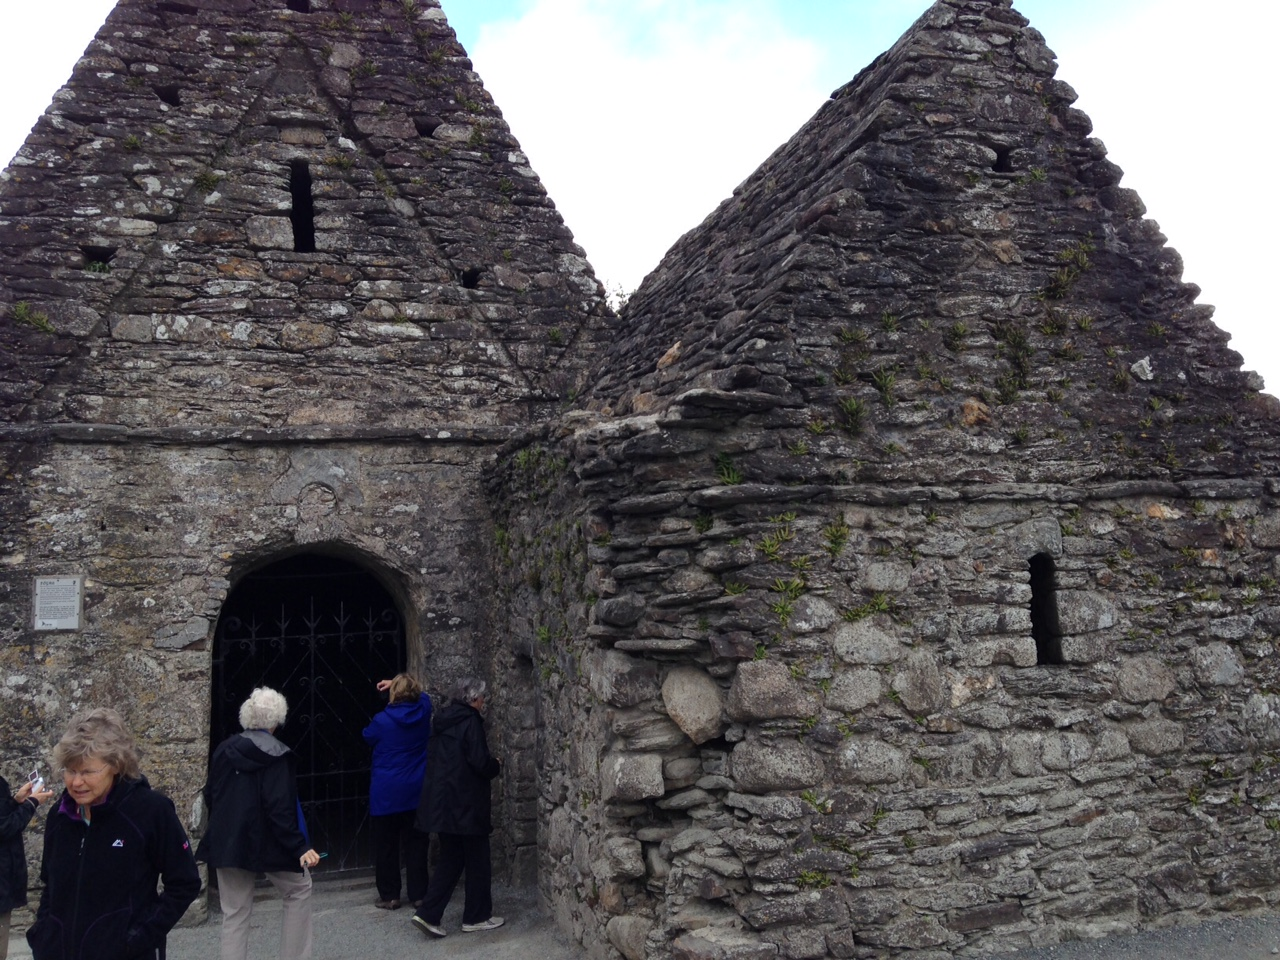 Rock church in Ireland, built about 200 AD